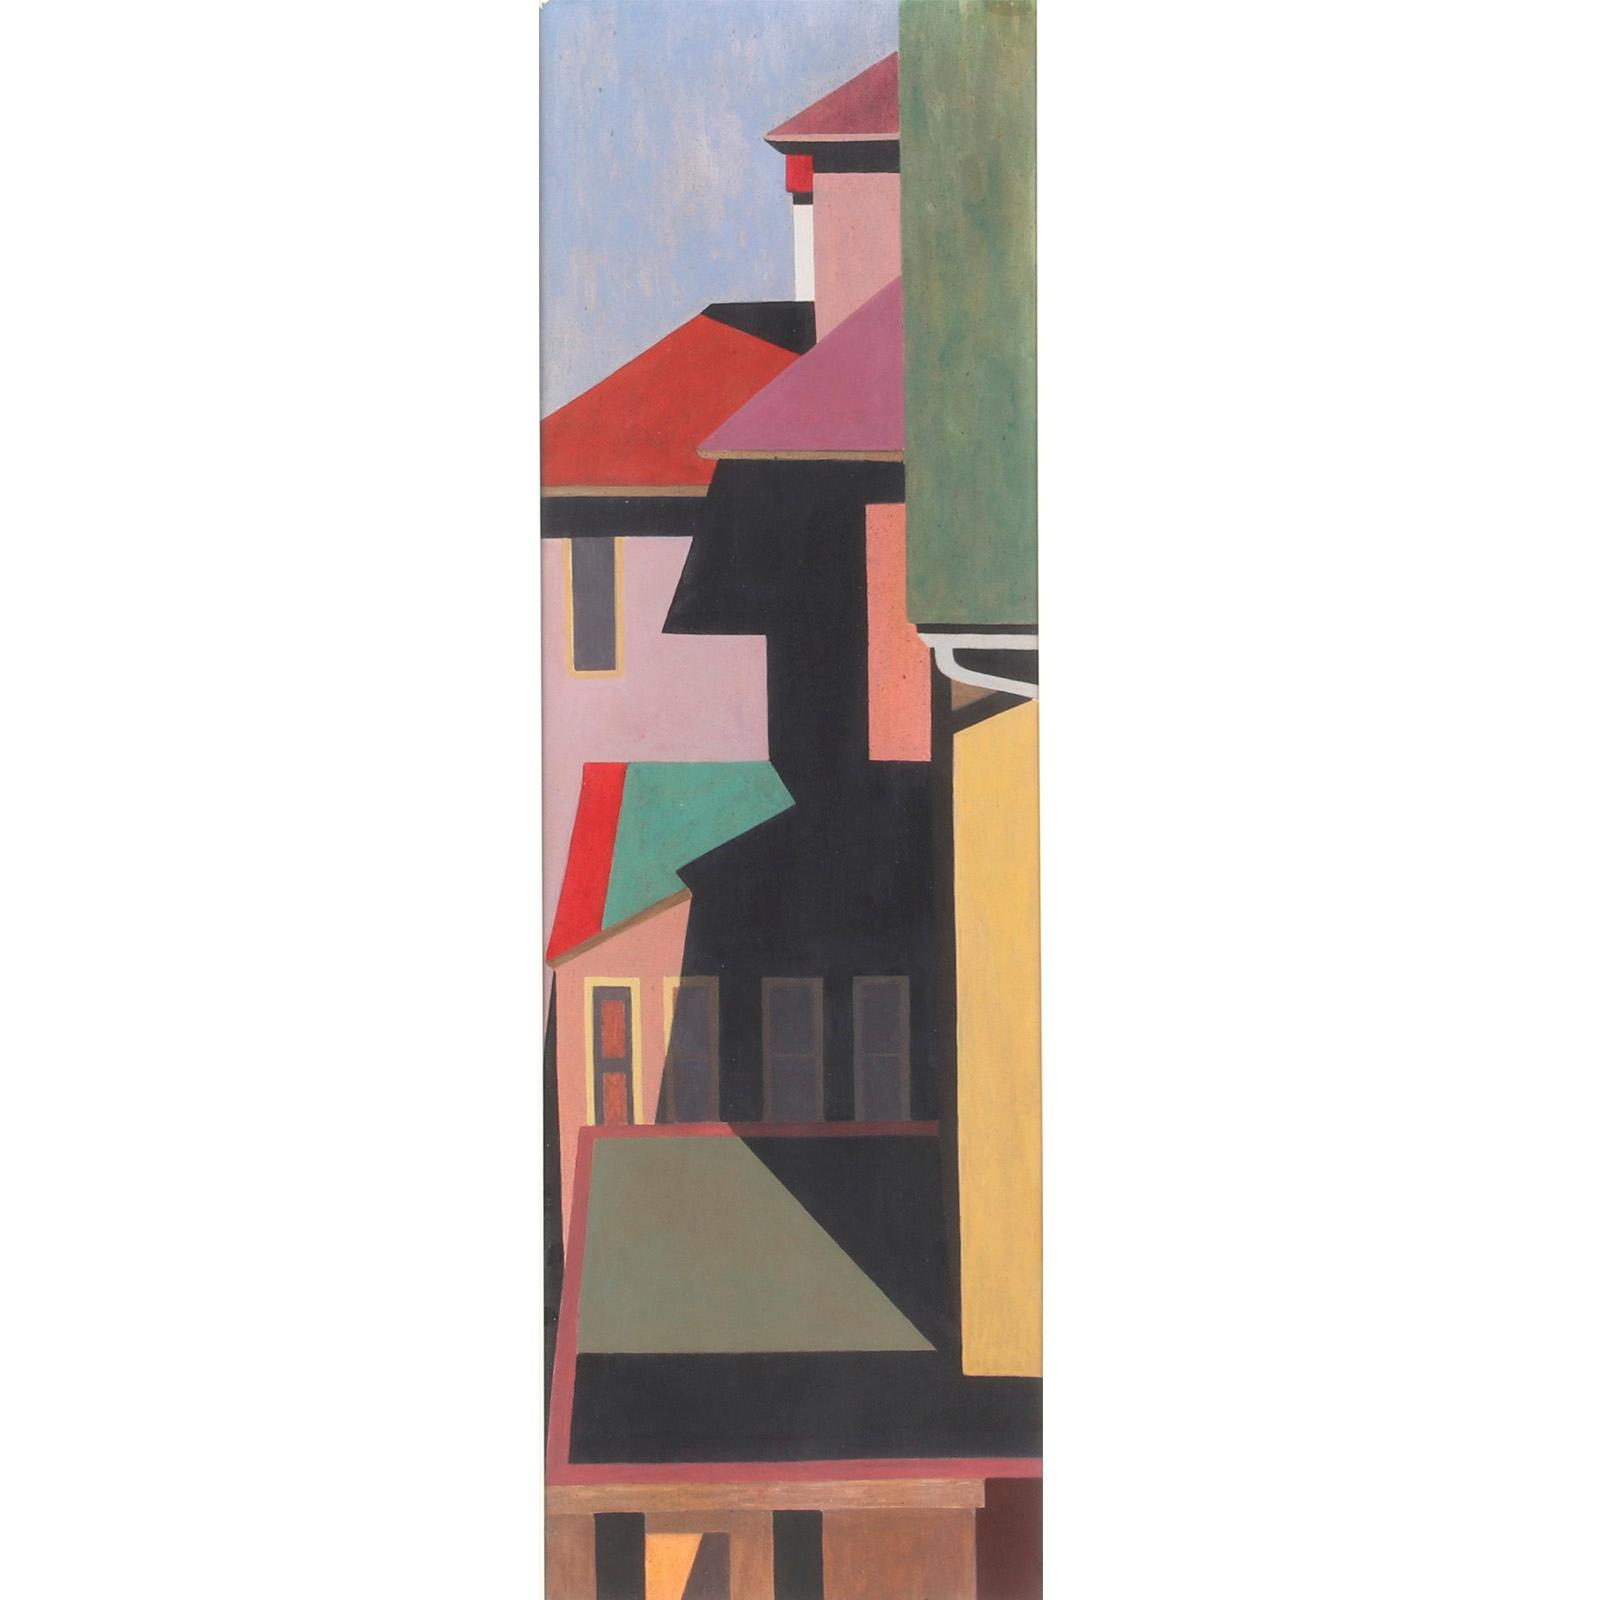 "Edmund Brucker, (American, 1912-1999), Untitled, Provincetown abstract buildings, ca.1945-50, gouache on board, 33 1/2""H x 10 1/4""W (image), 40""H x 16 1/2""W (frame)."